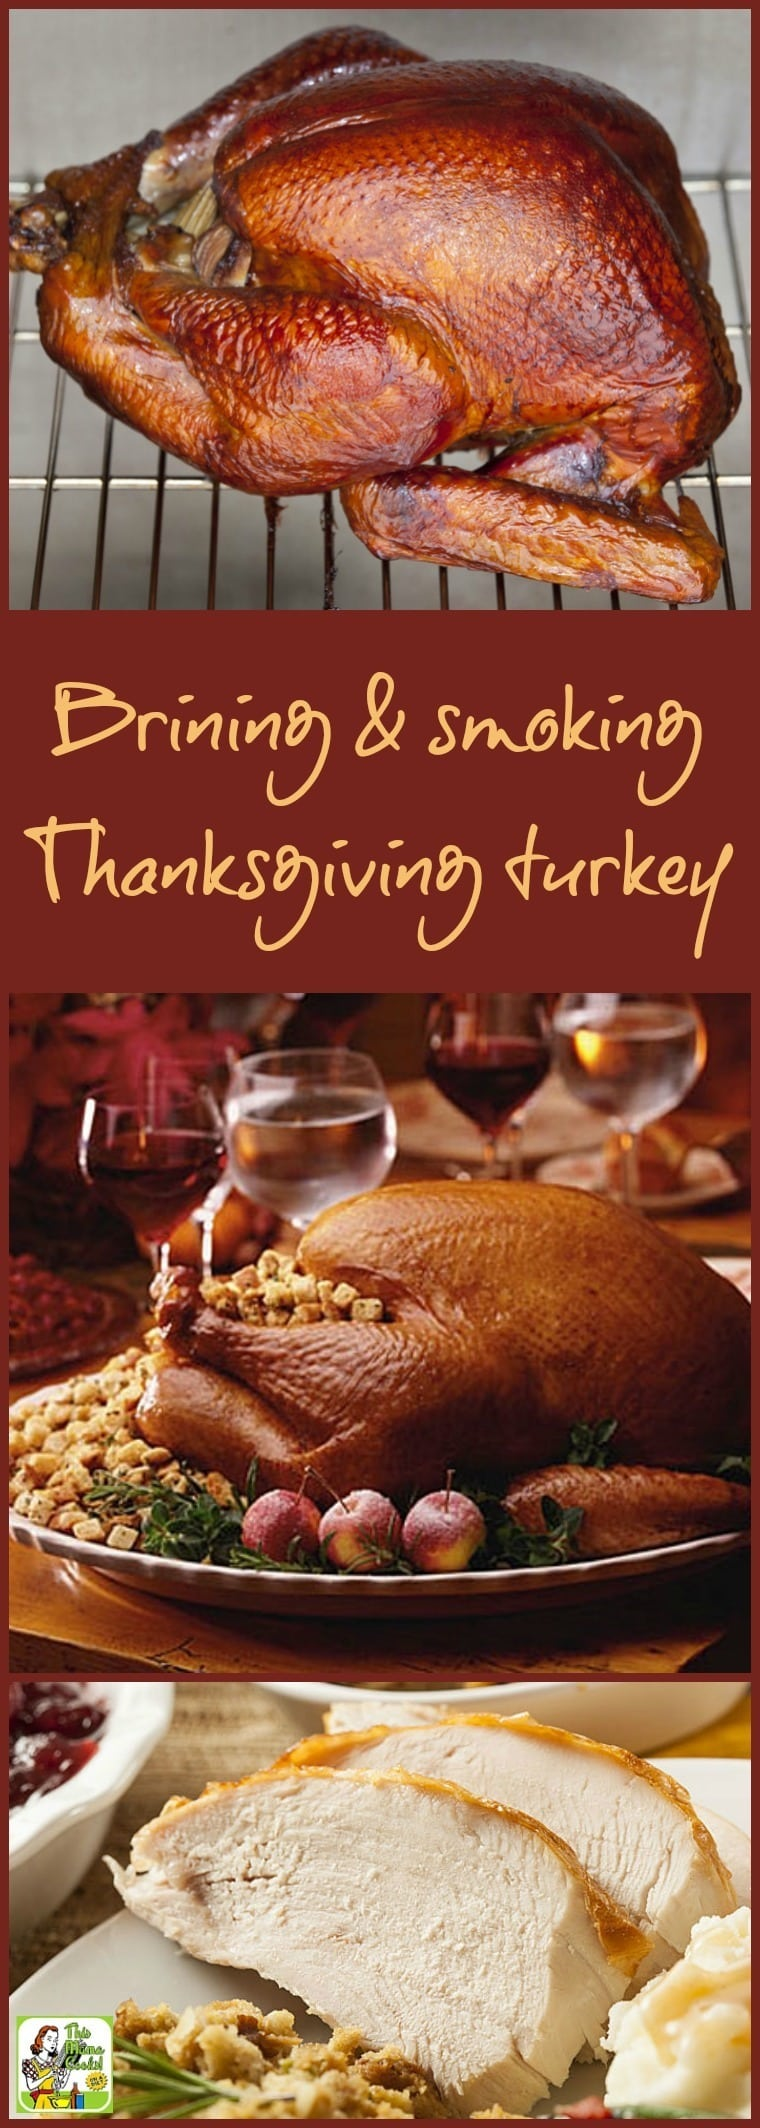 Want to learn an easy way how to brine and smoke your Thanksgiving turkey?  Click to get the easy brining and smoking recipe for Smoked Turkey with Maple-Herb Brine. It's gluten free and delicious to make in your smoker, grill or oven. #thanksgiving #turkey #brining #smoking #grilling #glutenfree